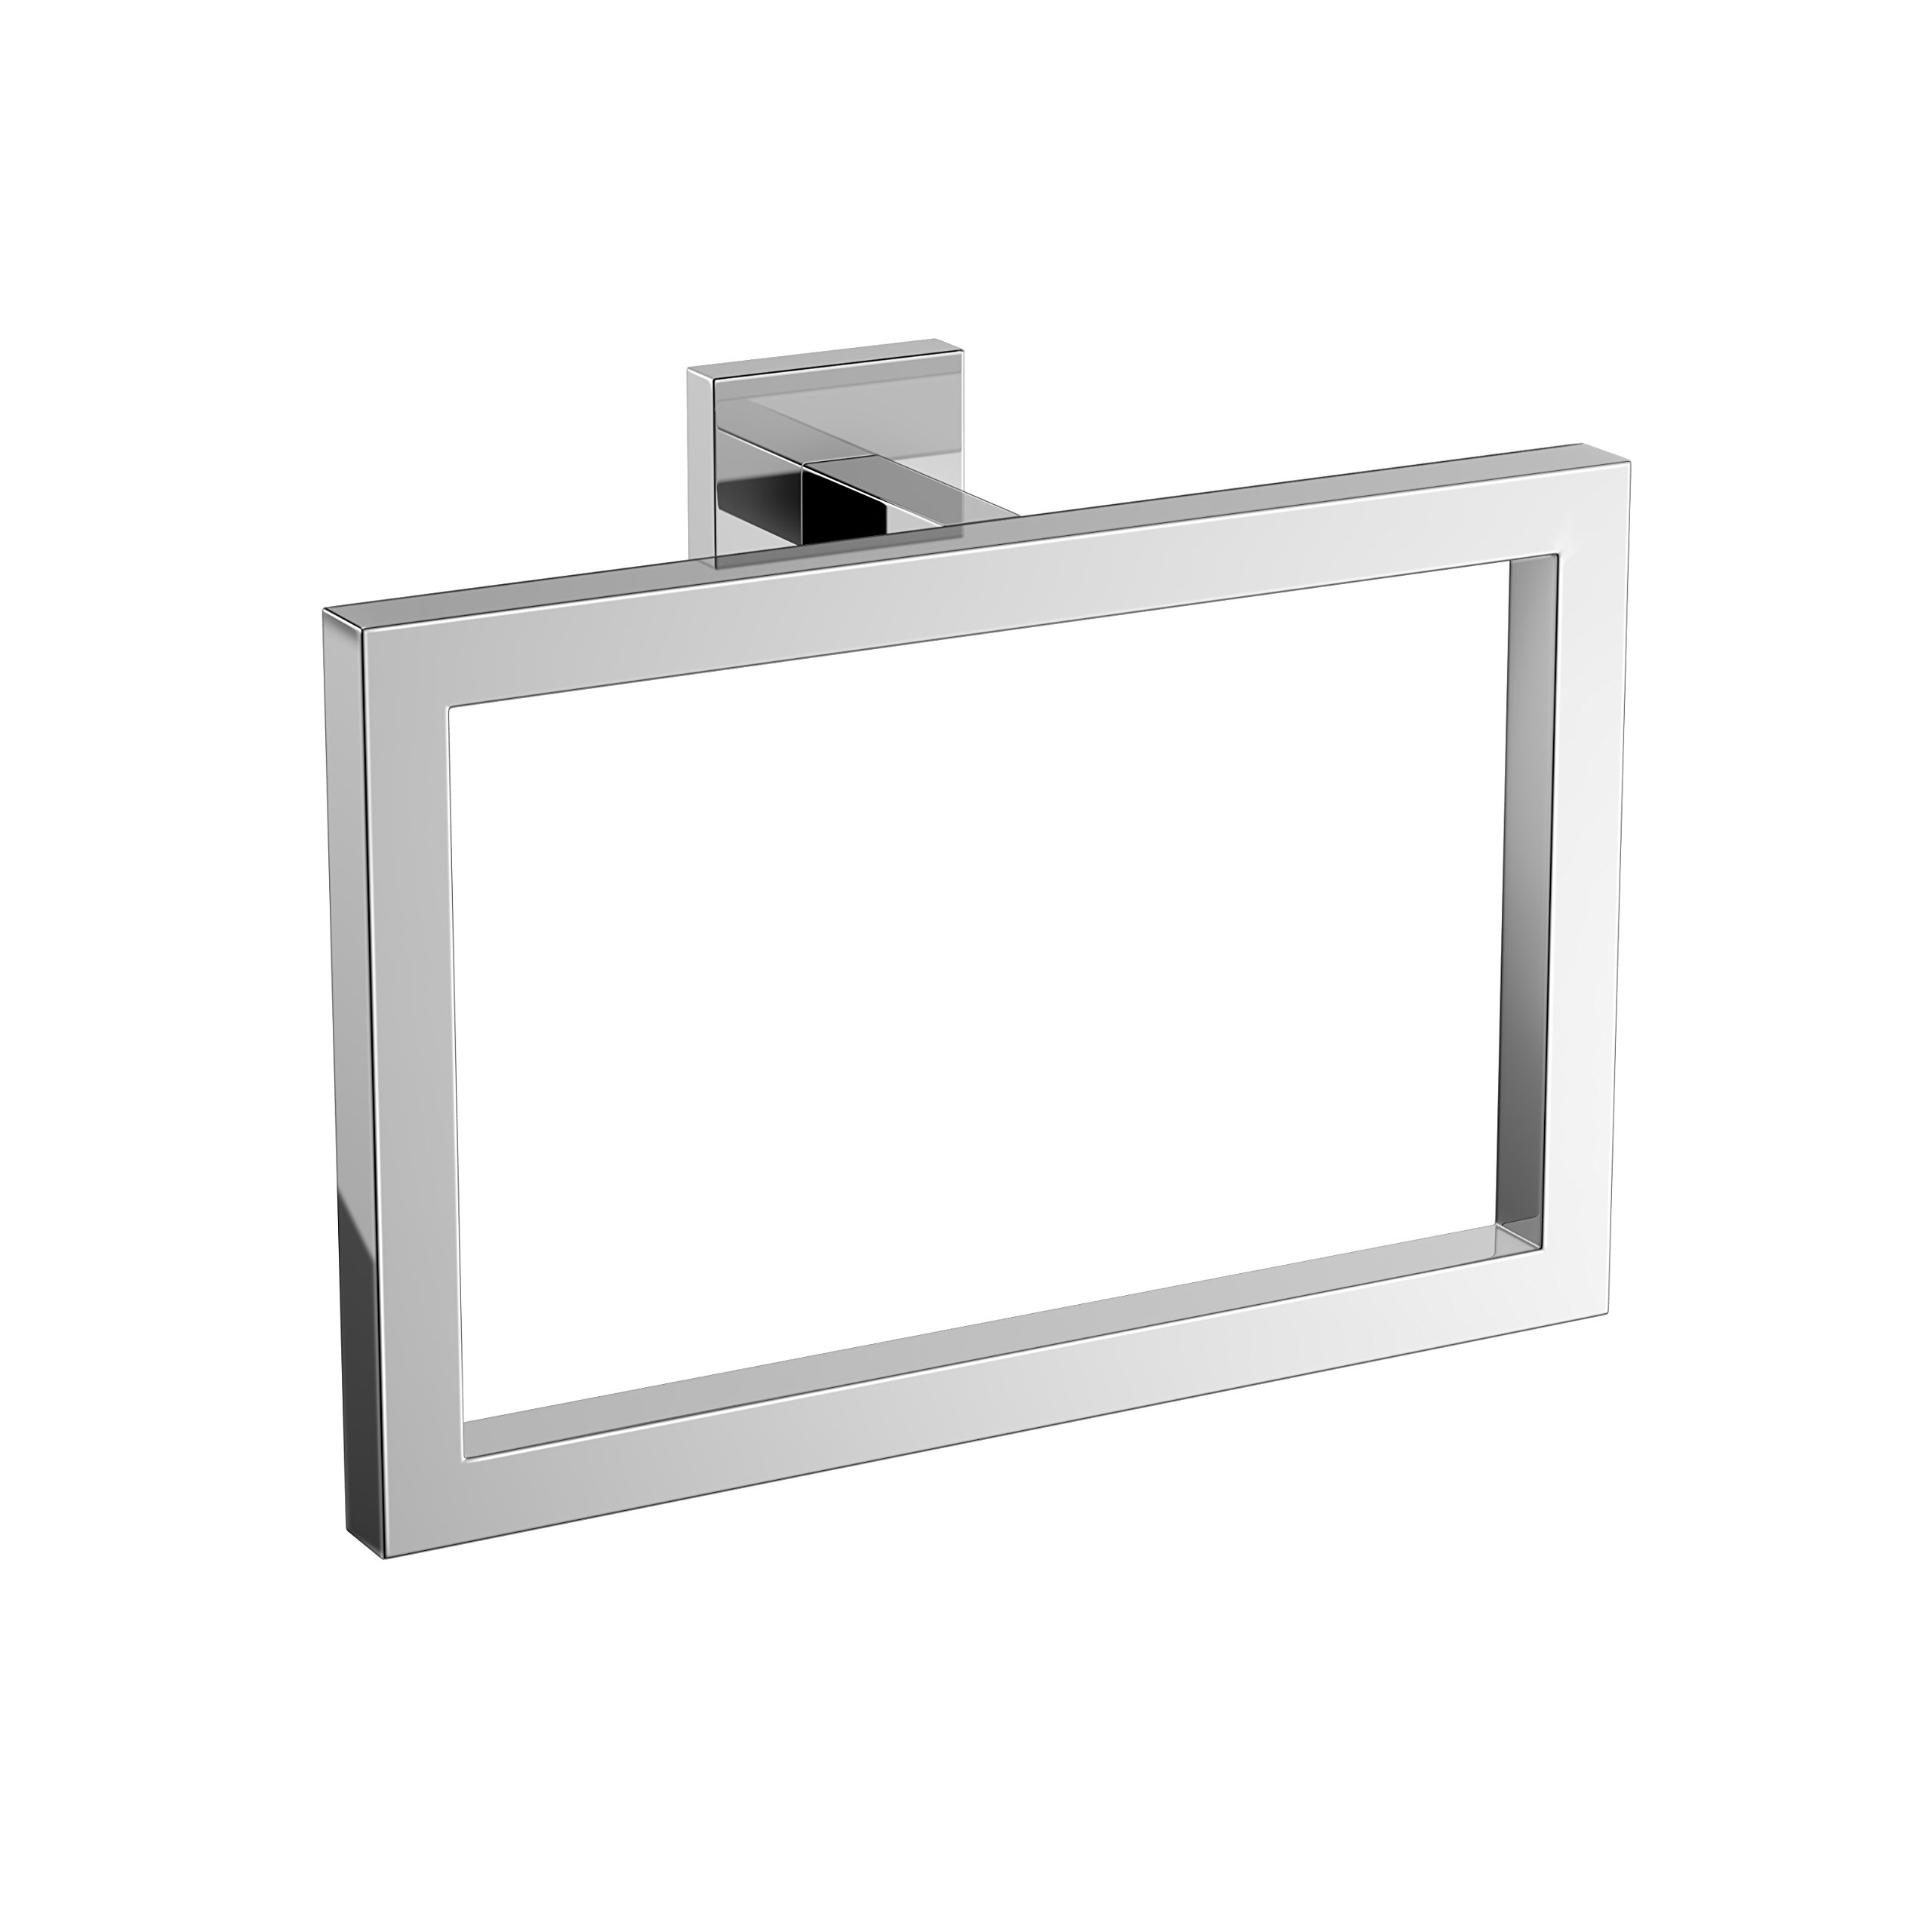 Square Bathroom Accessories: Amazon.co.uk